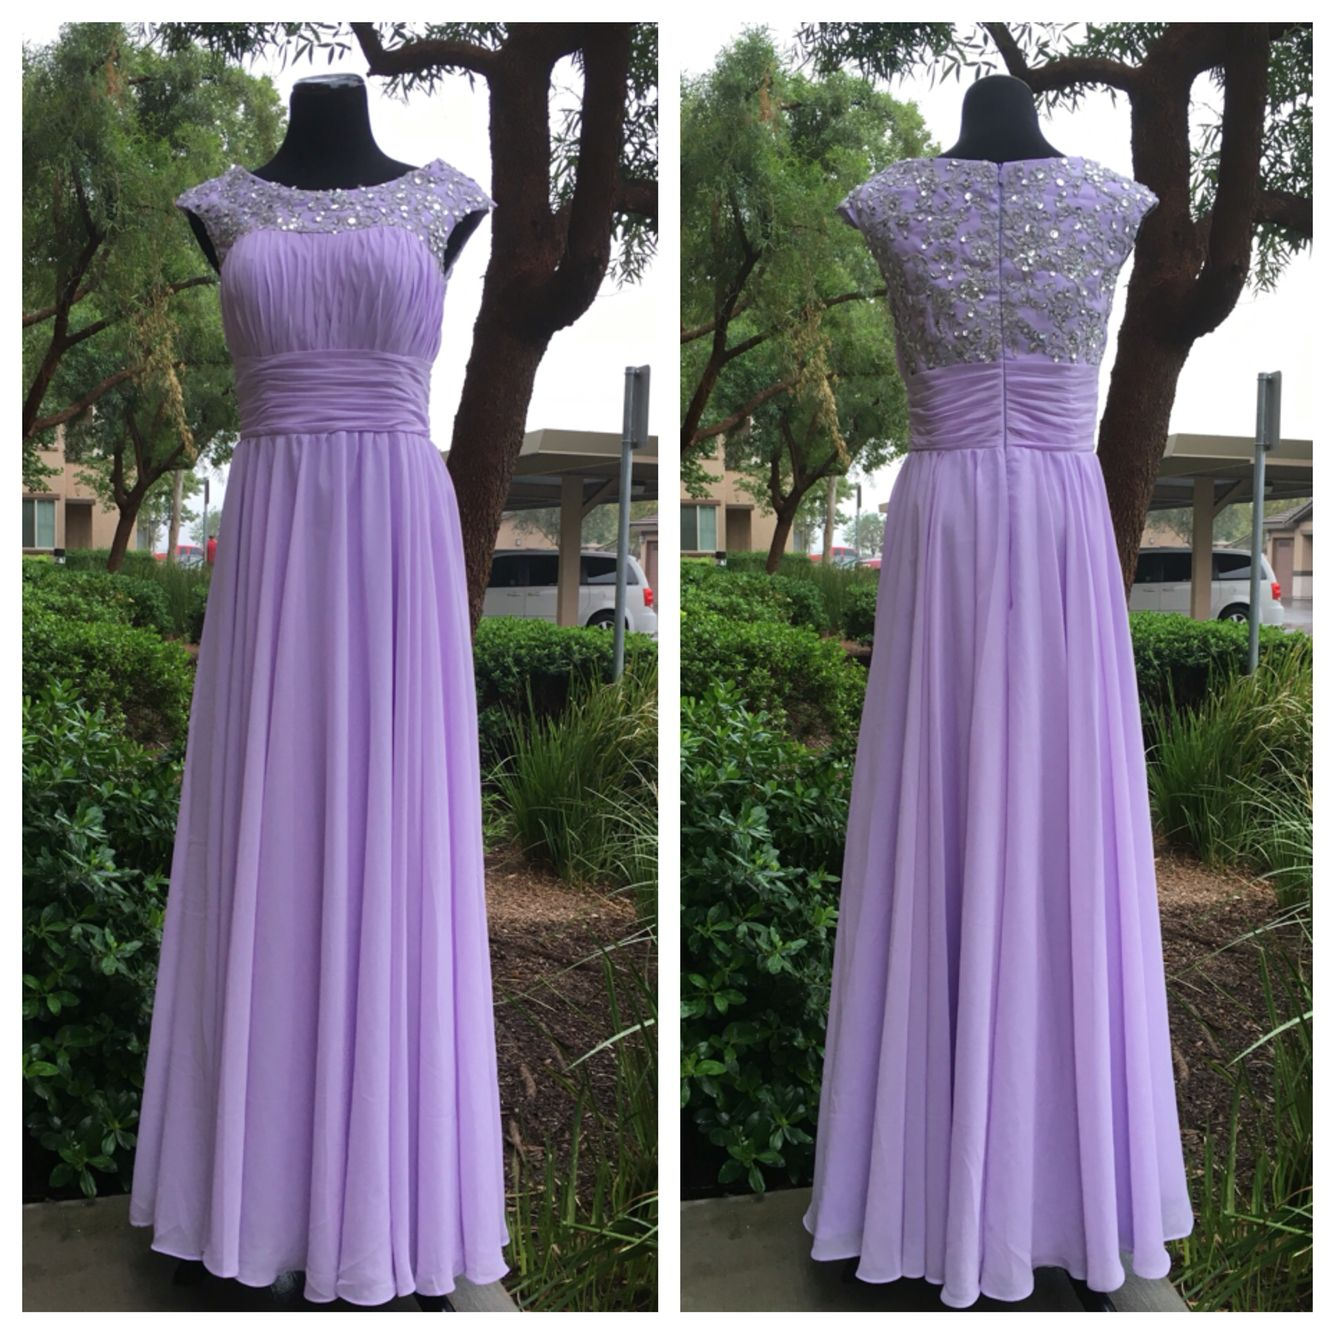 Custom Made Modest Prom Dress With Sleeves Dresses I Want Prom